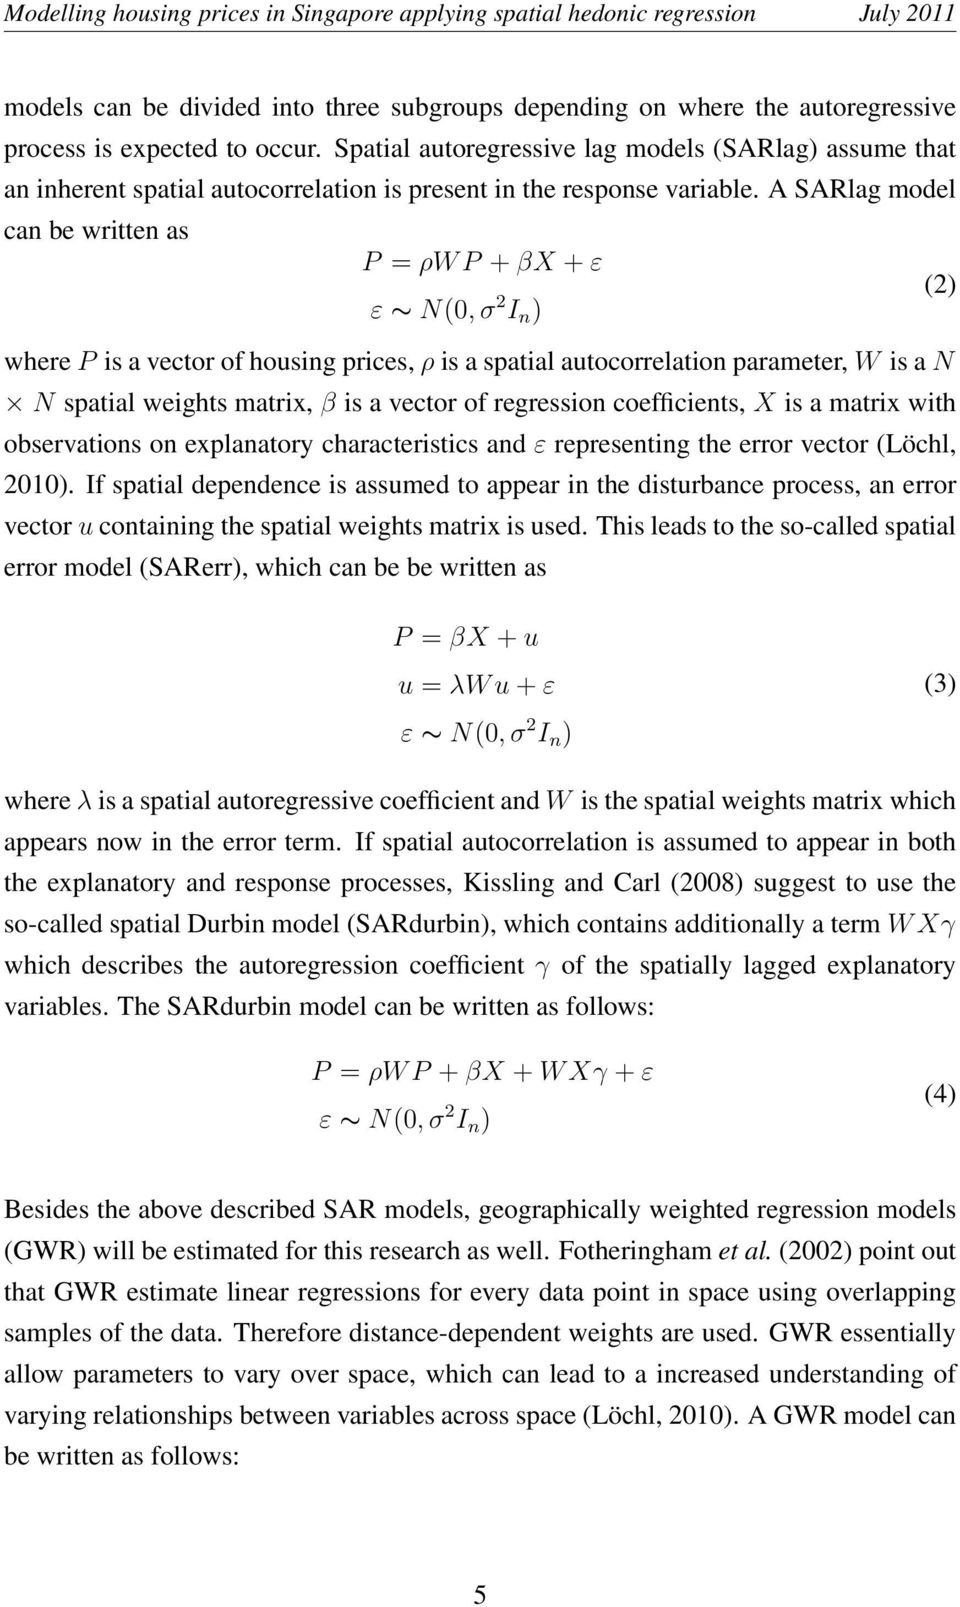 A SARlag model can be written as P = ρw P + βx + ε (2) ε N(0, σ 2 I n ) where P is a vector of housing prices, ρ is a spatial autocorrelation parameter, W is a N N spatial weights matrix, β is a